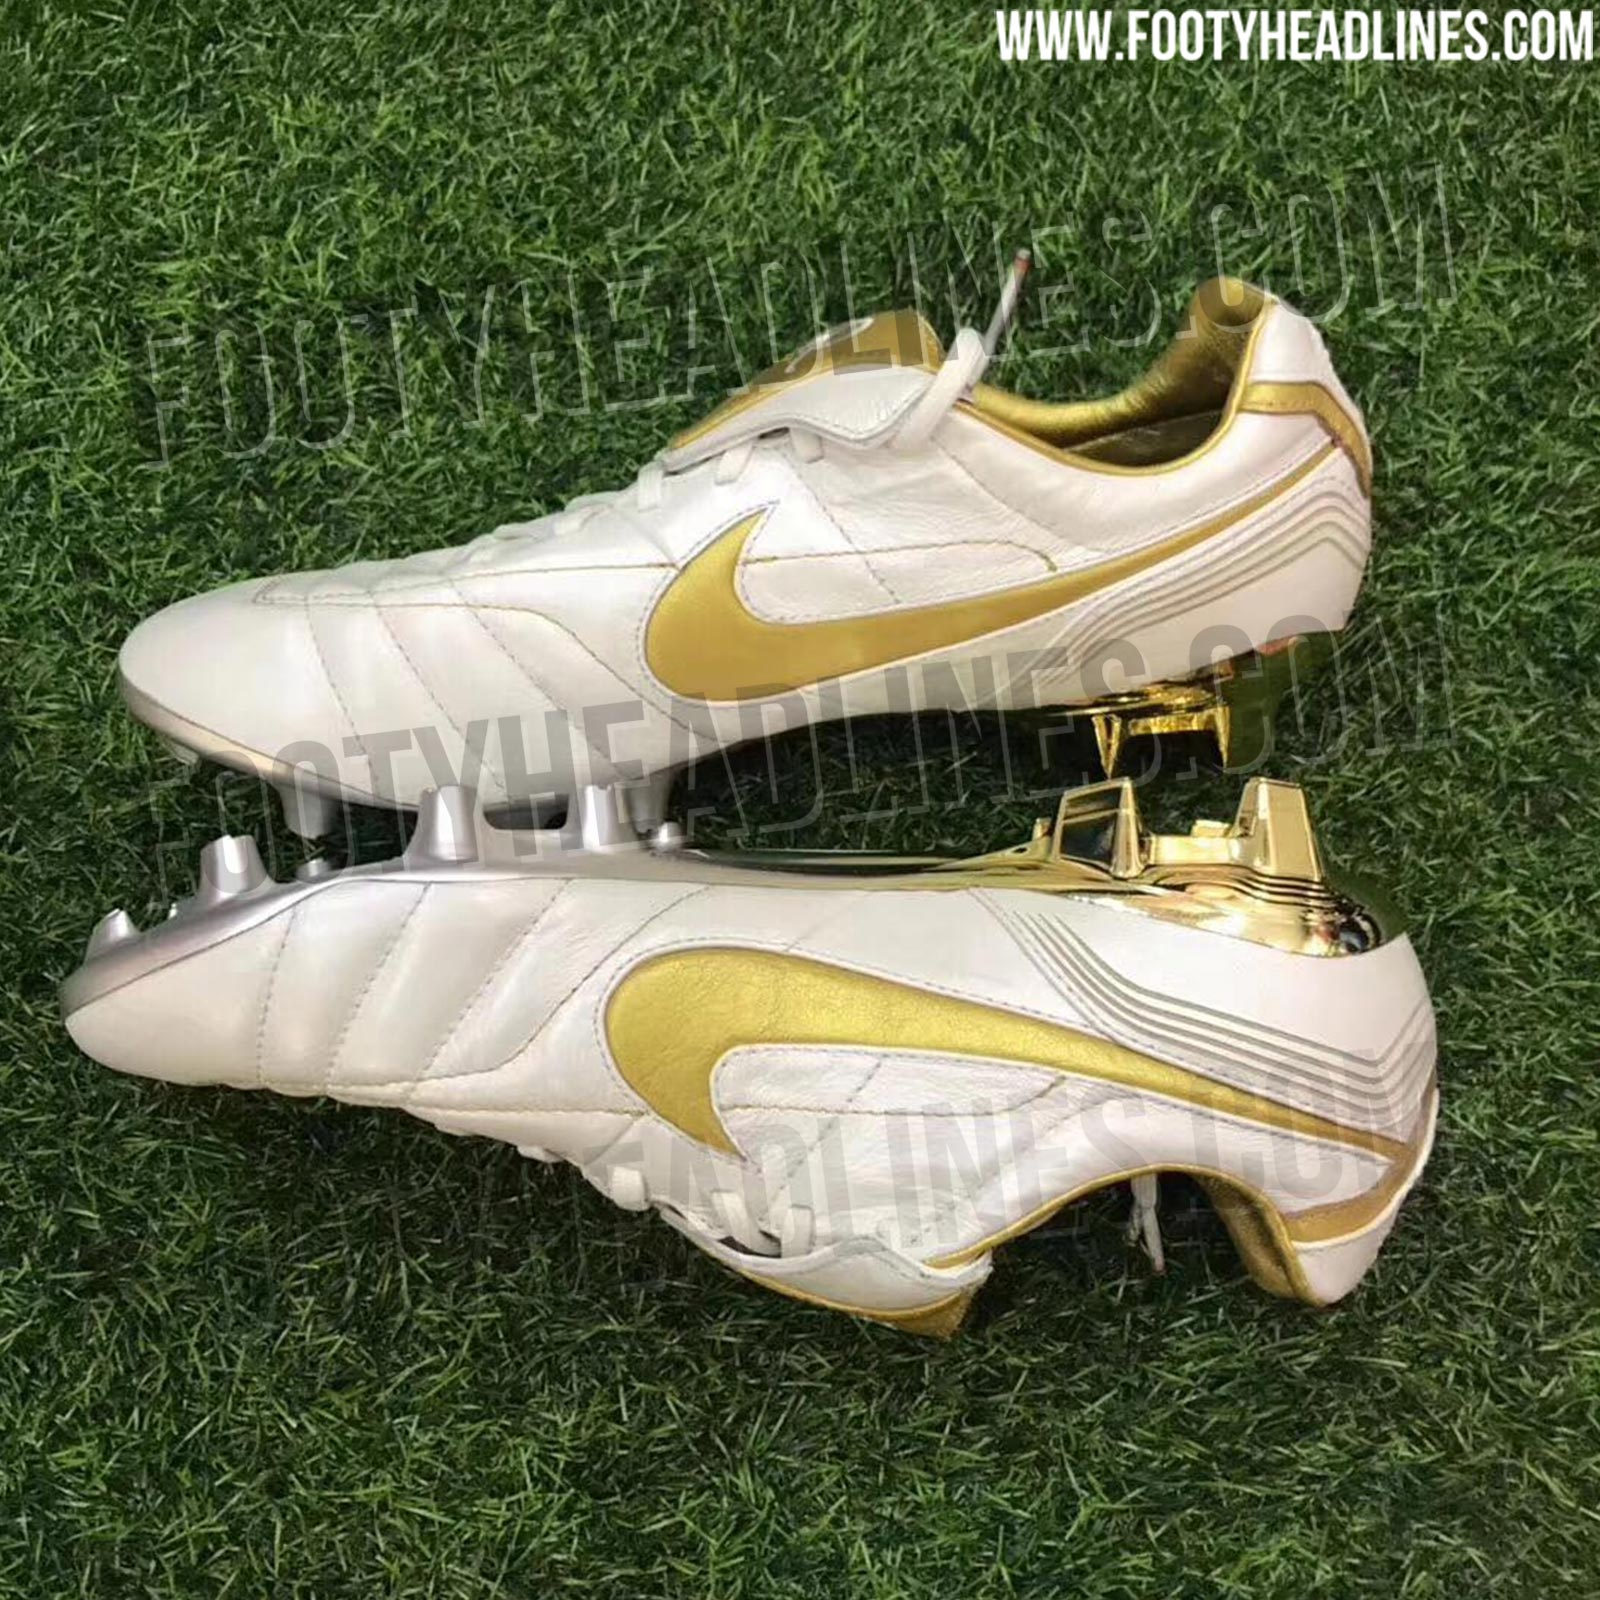 the latest 68bcd 58f7f new arrivals nike tiempo legend ronaldinho boots released ...